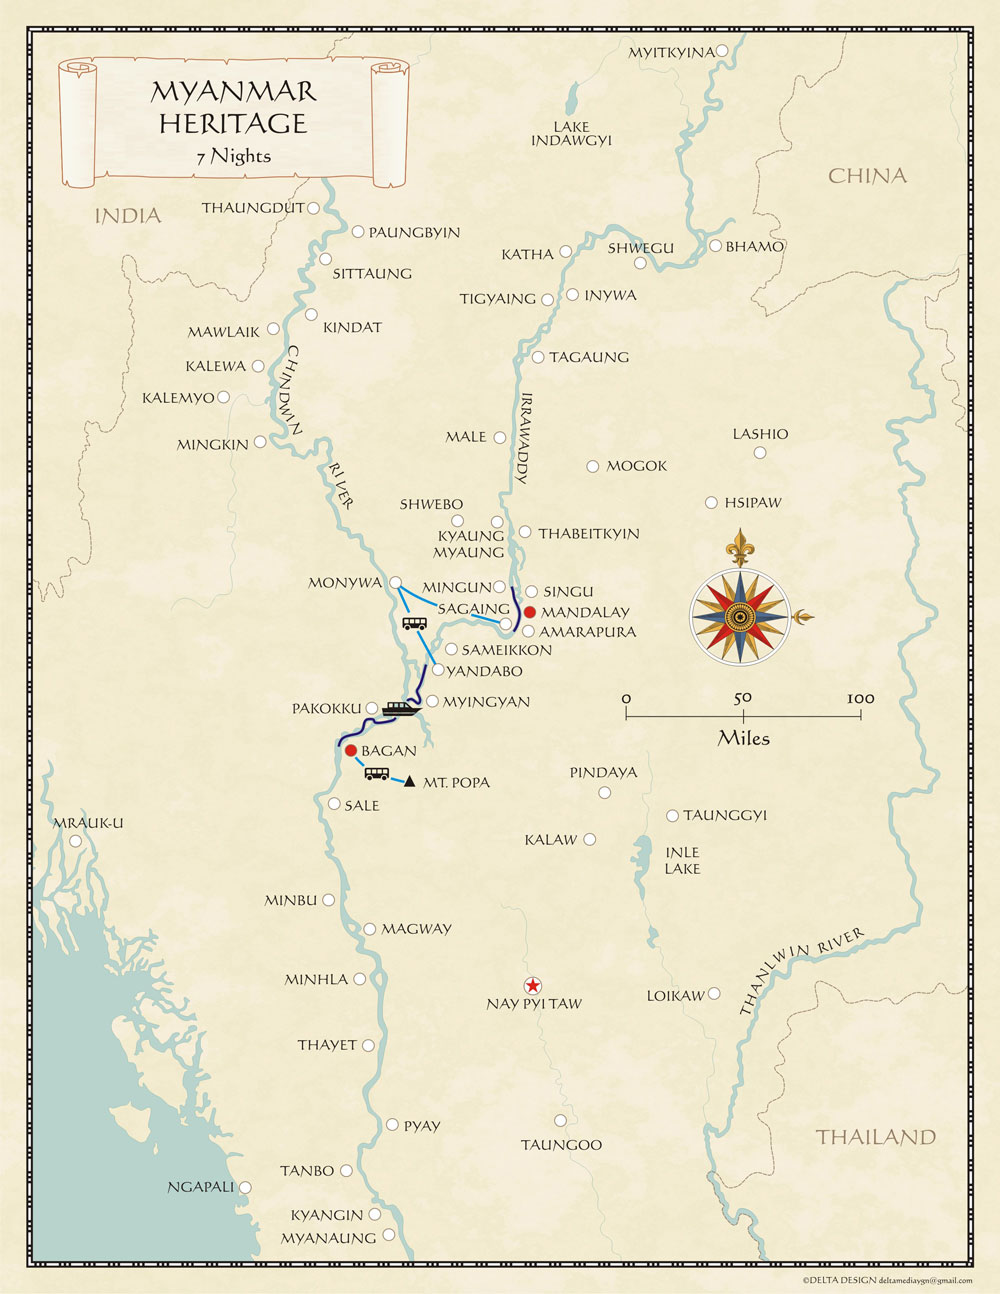 Myanmar Irrawaddy Cruise Map